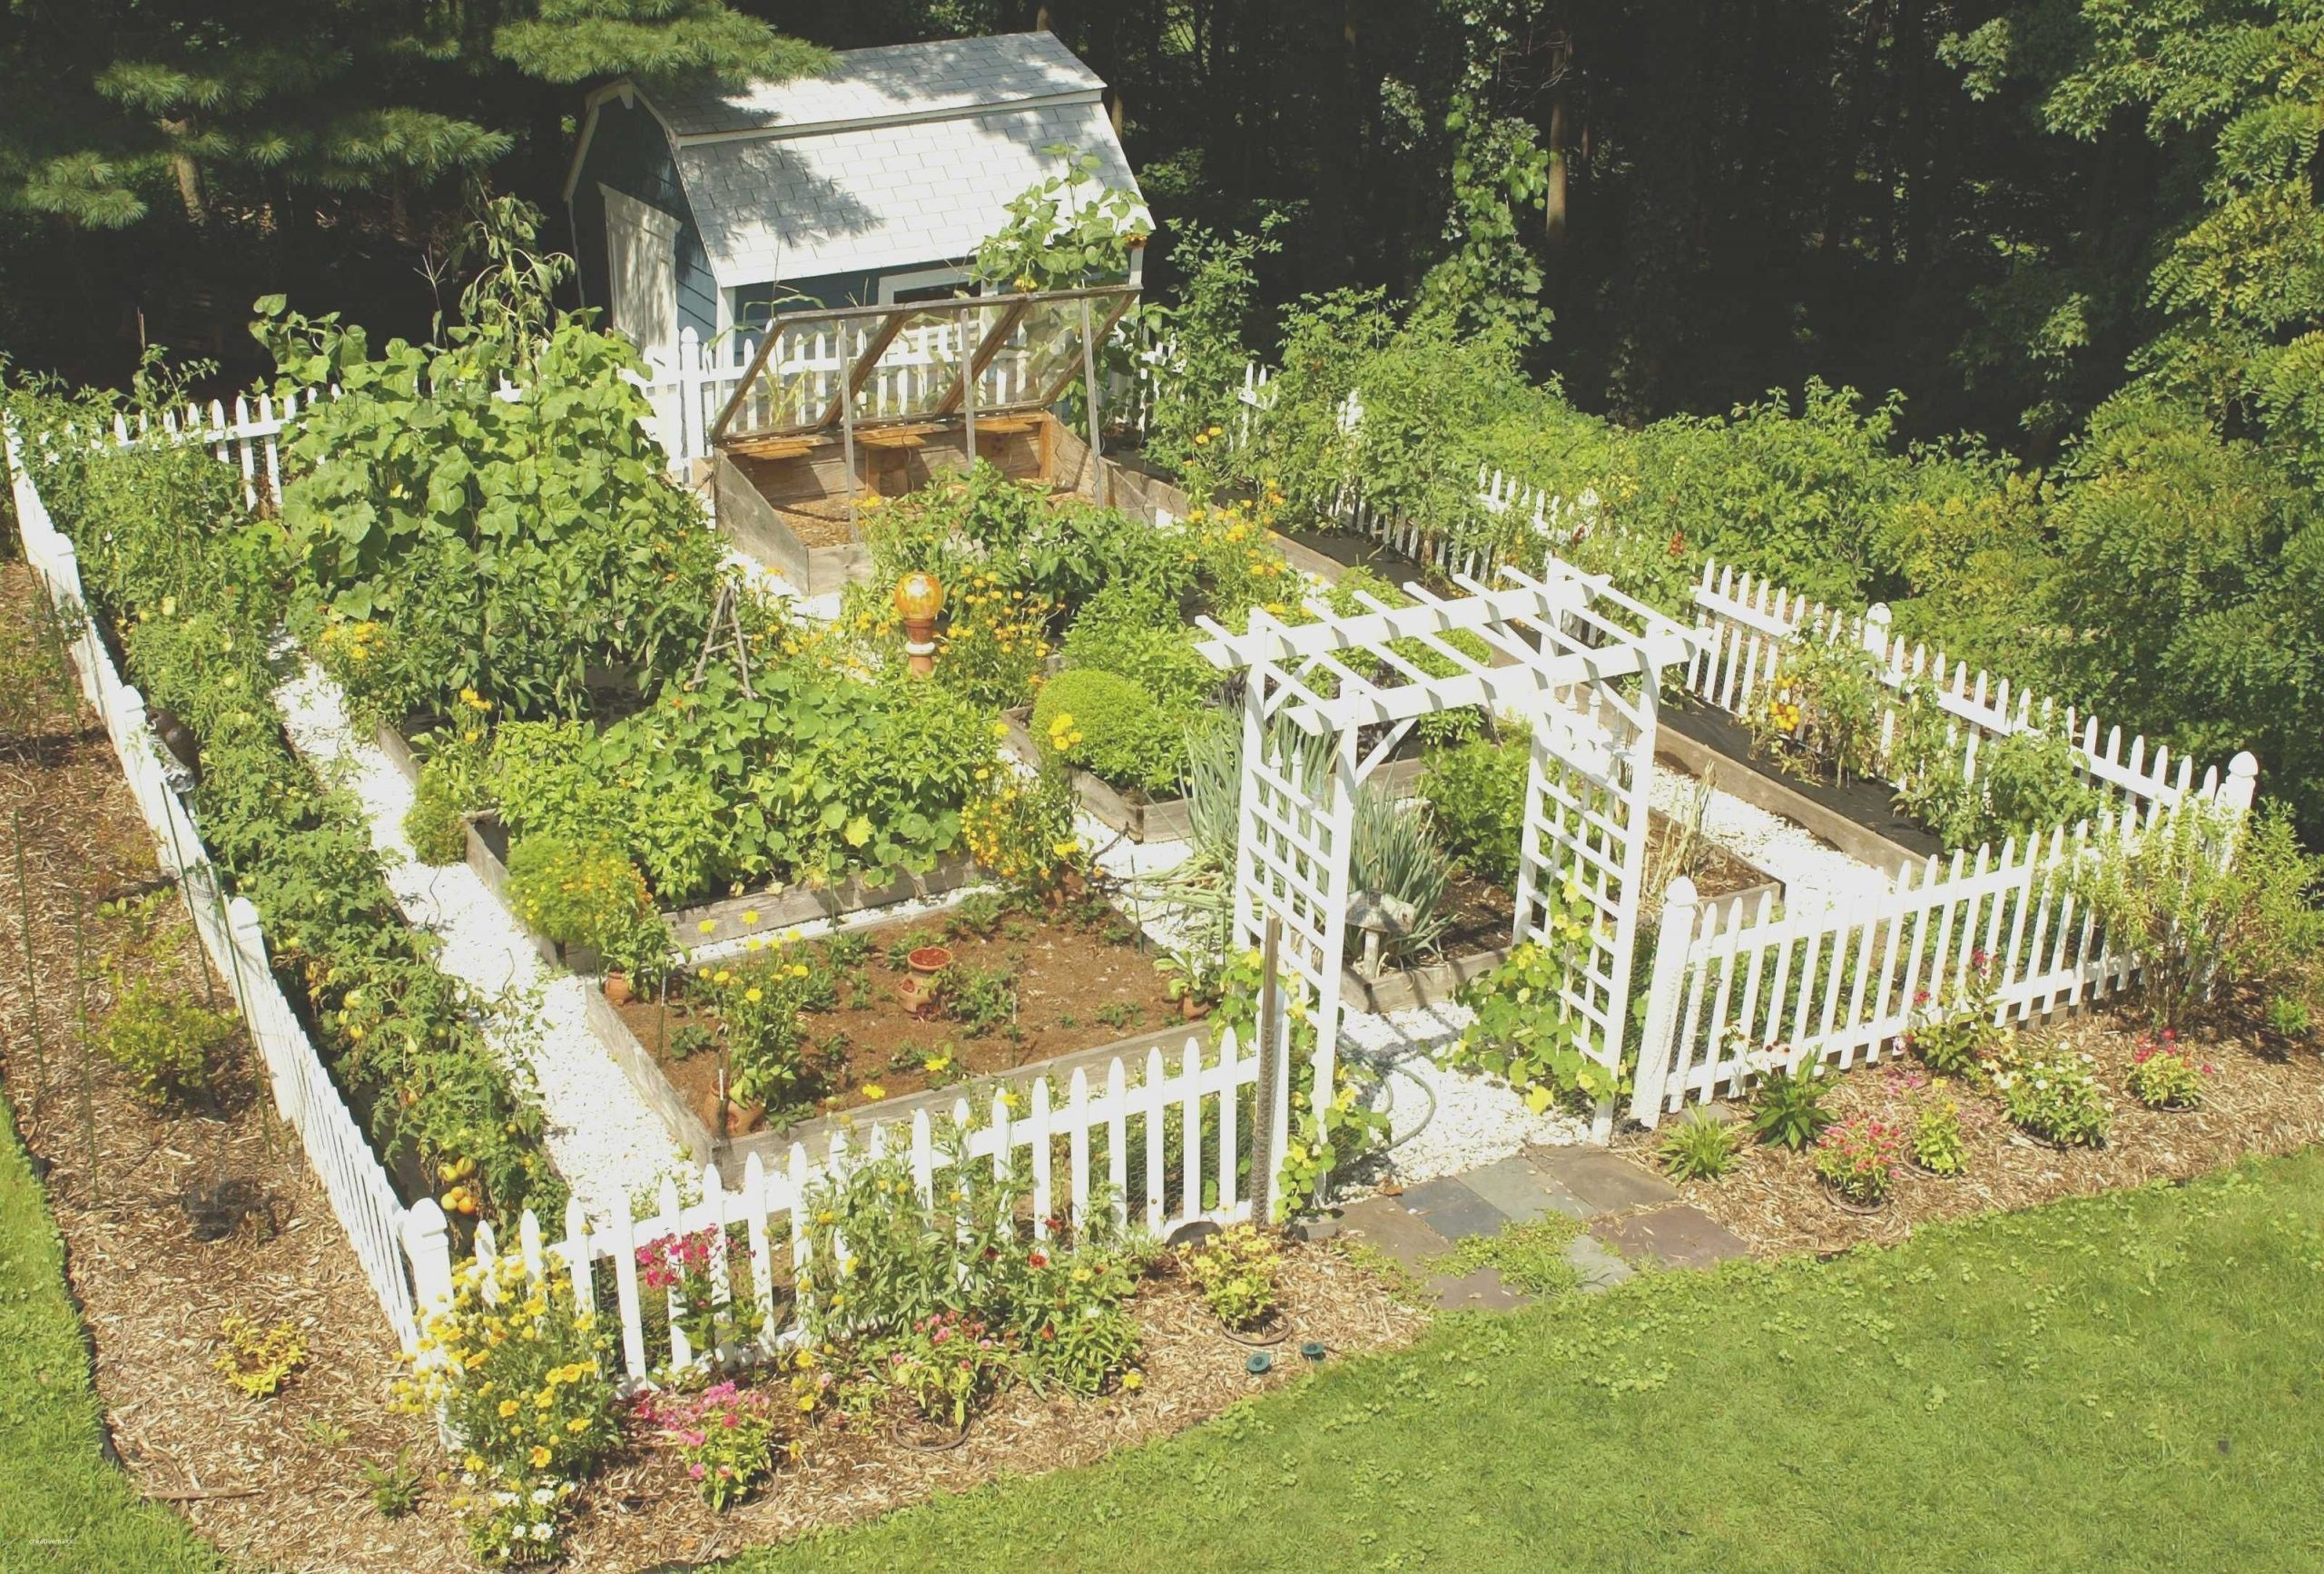 40 Perfect Home Vegetable Garden Design Ideas In 2020 Home